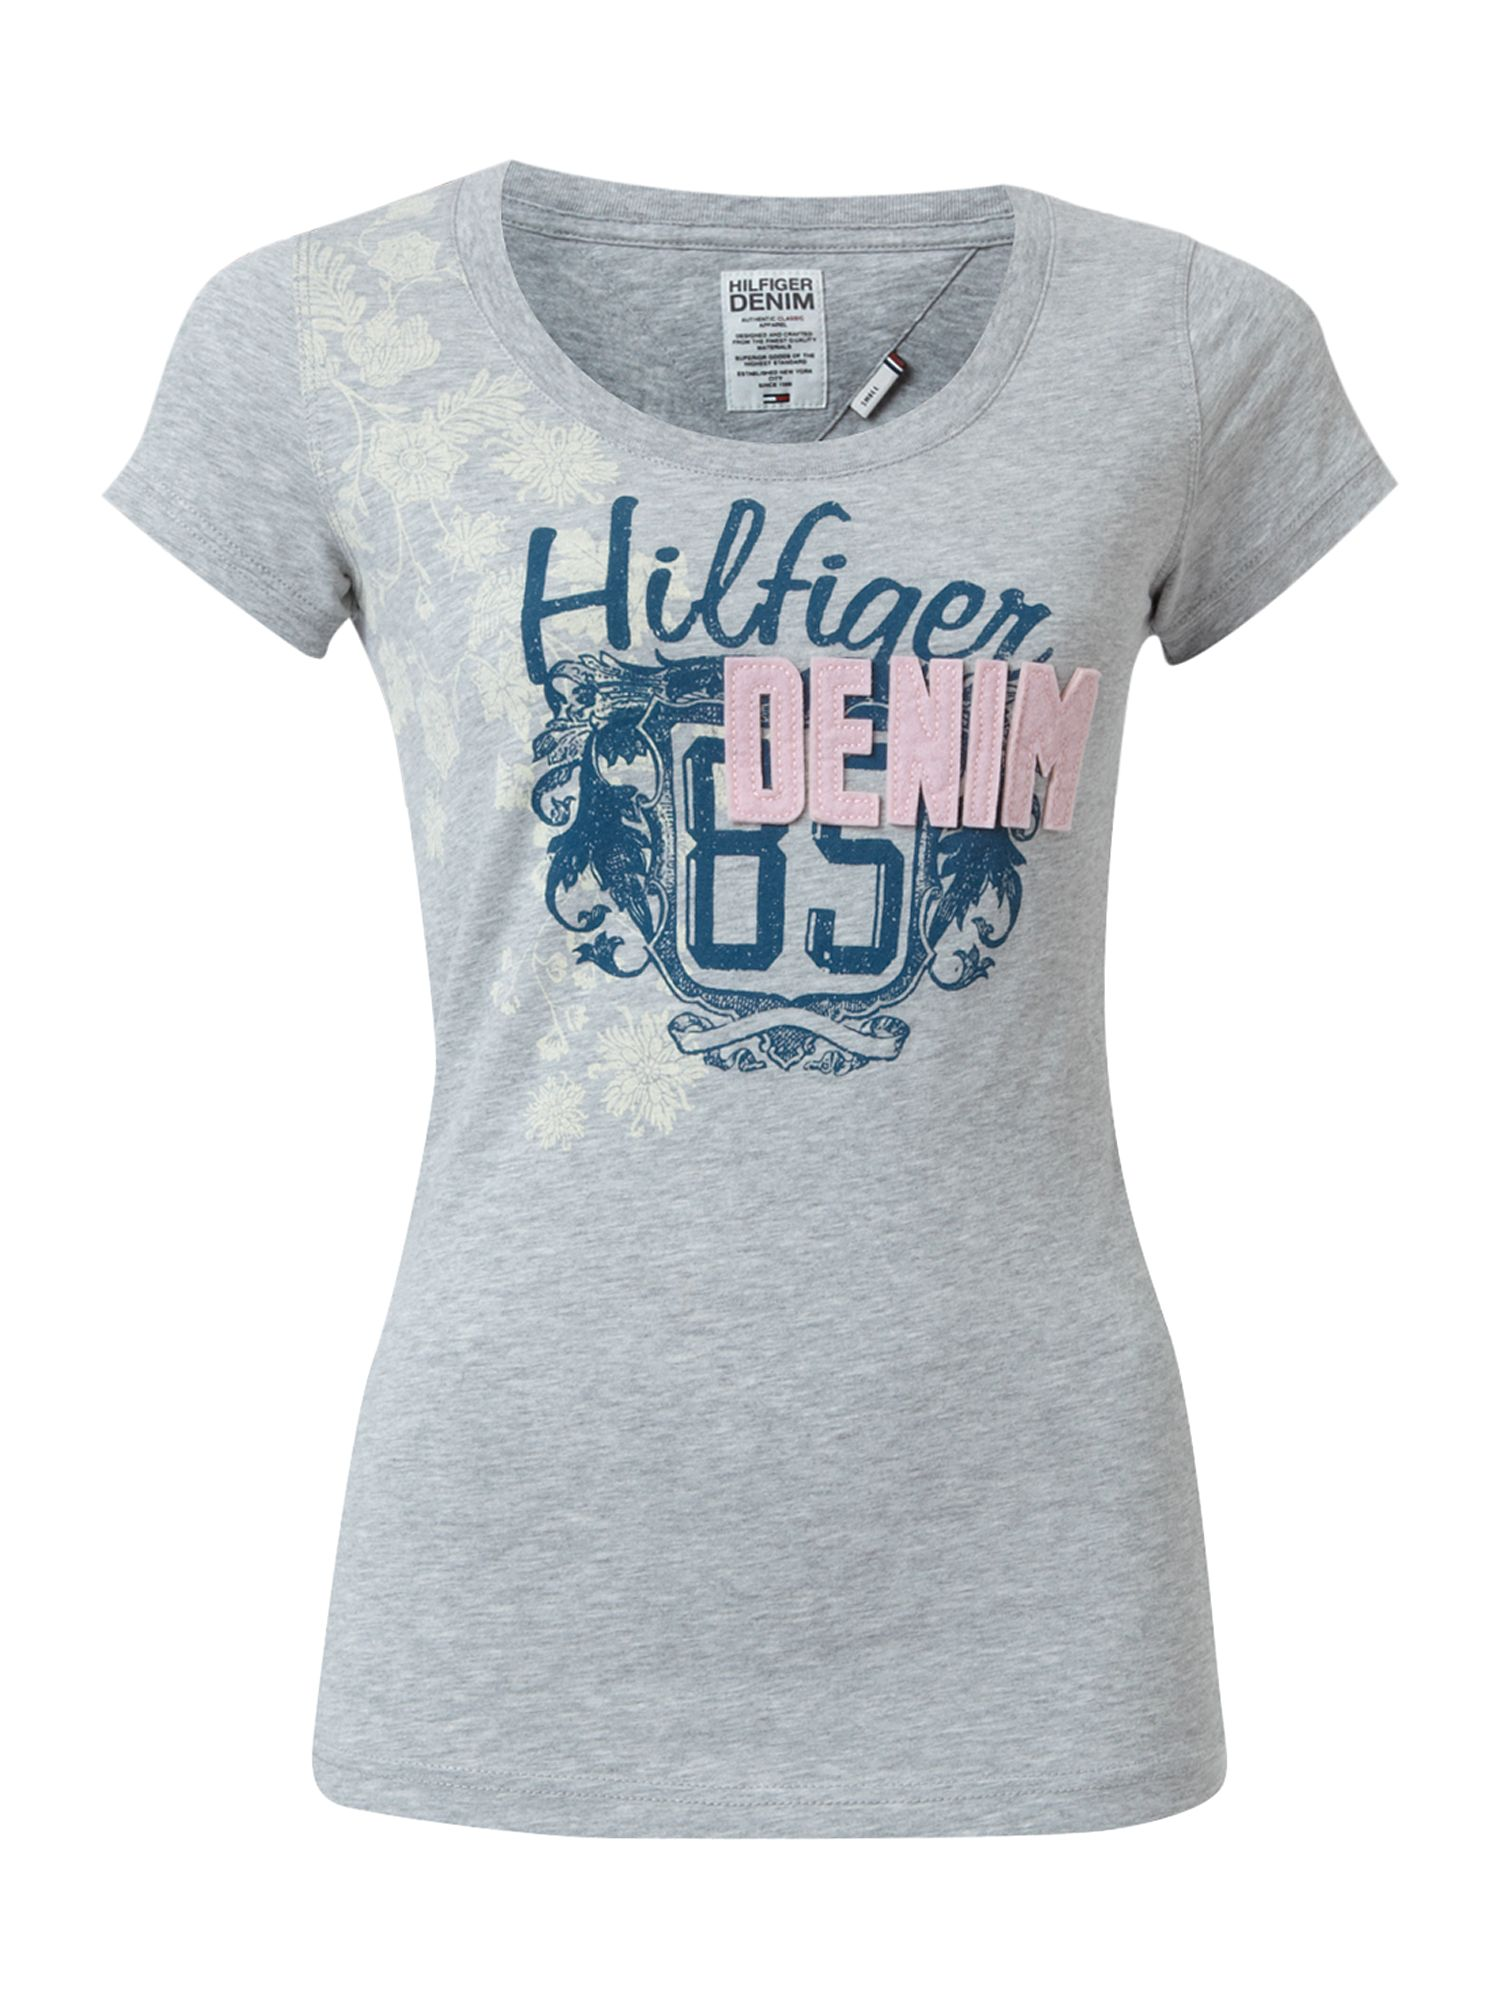 Tommy Hilfiger Elly cotton t-shirt Grey product image